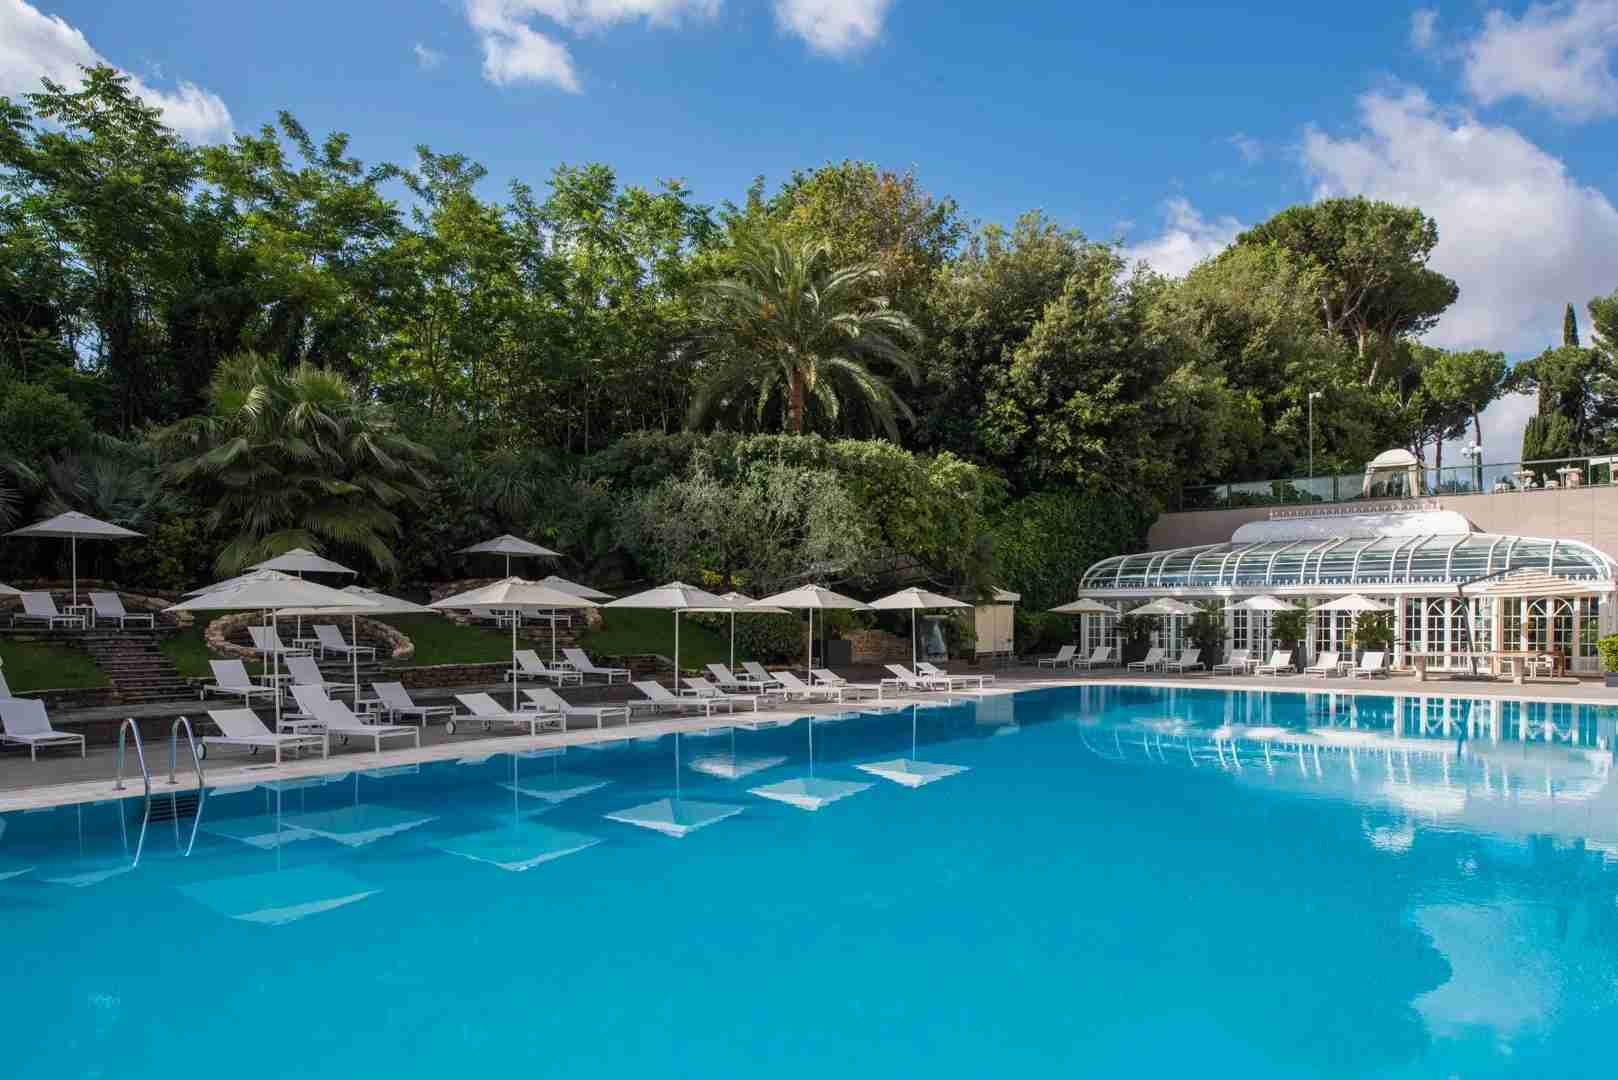 Poolside paradise at Rome Cavalieri, A Waldorf Astoria Resort. (Photo courtesy of Waldorf Astoria)